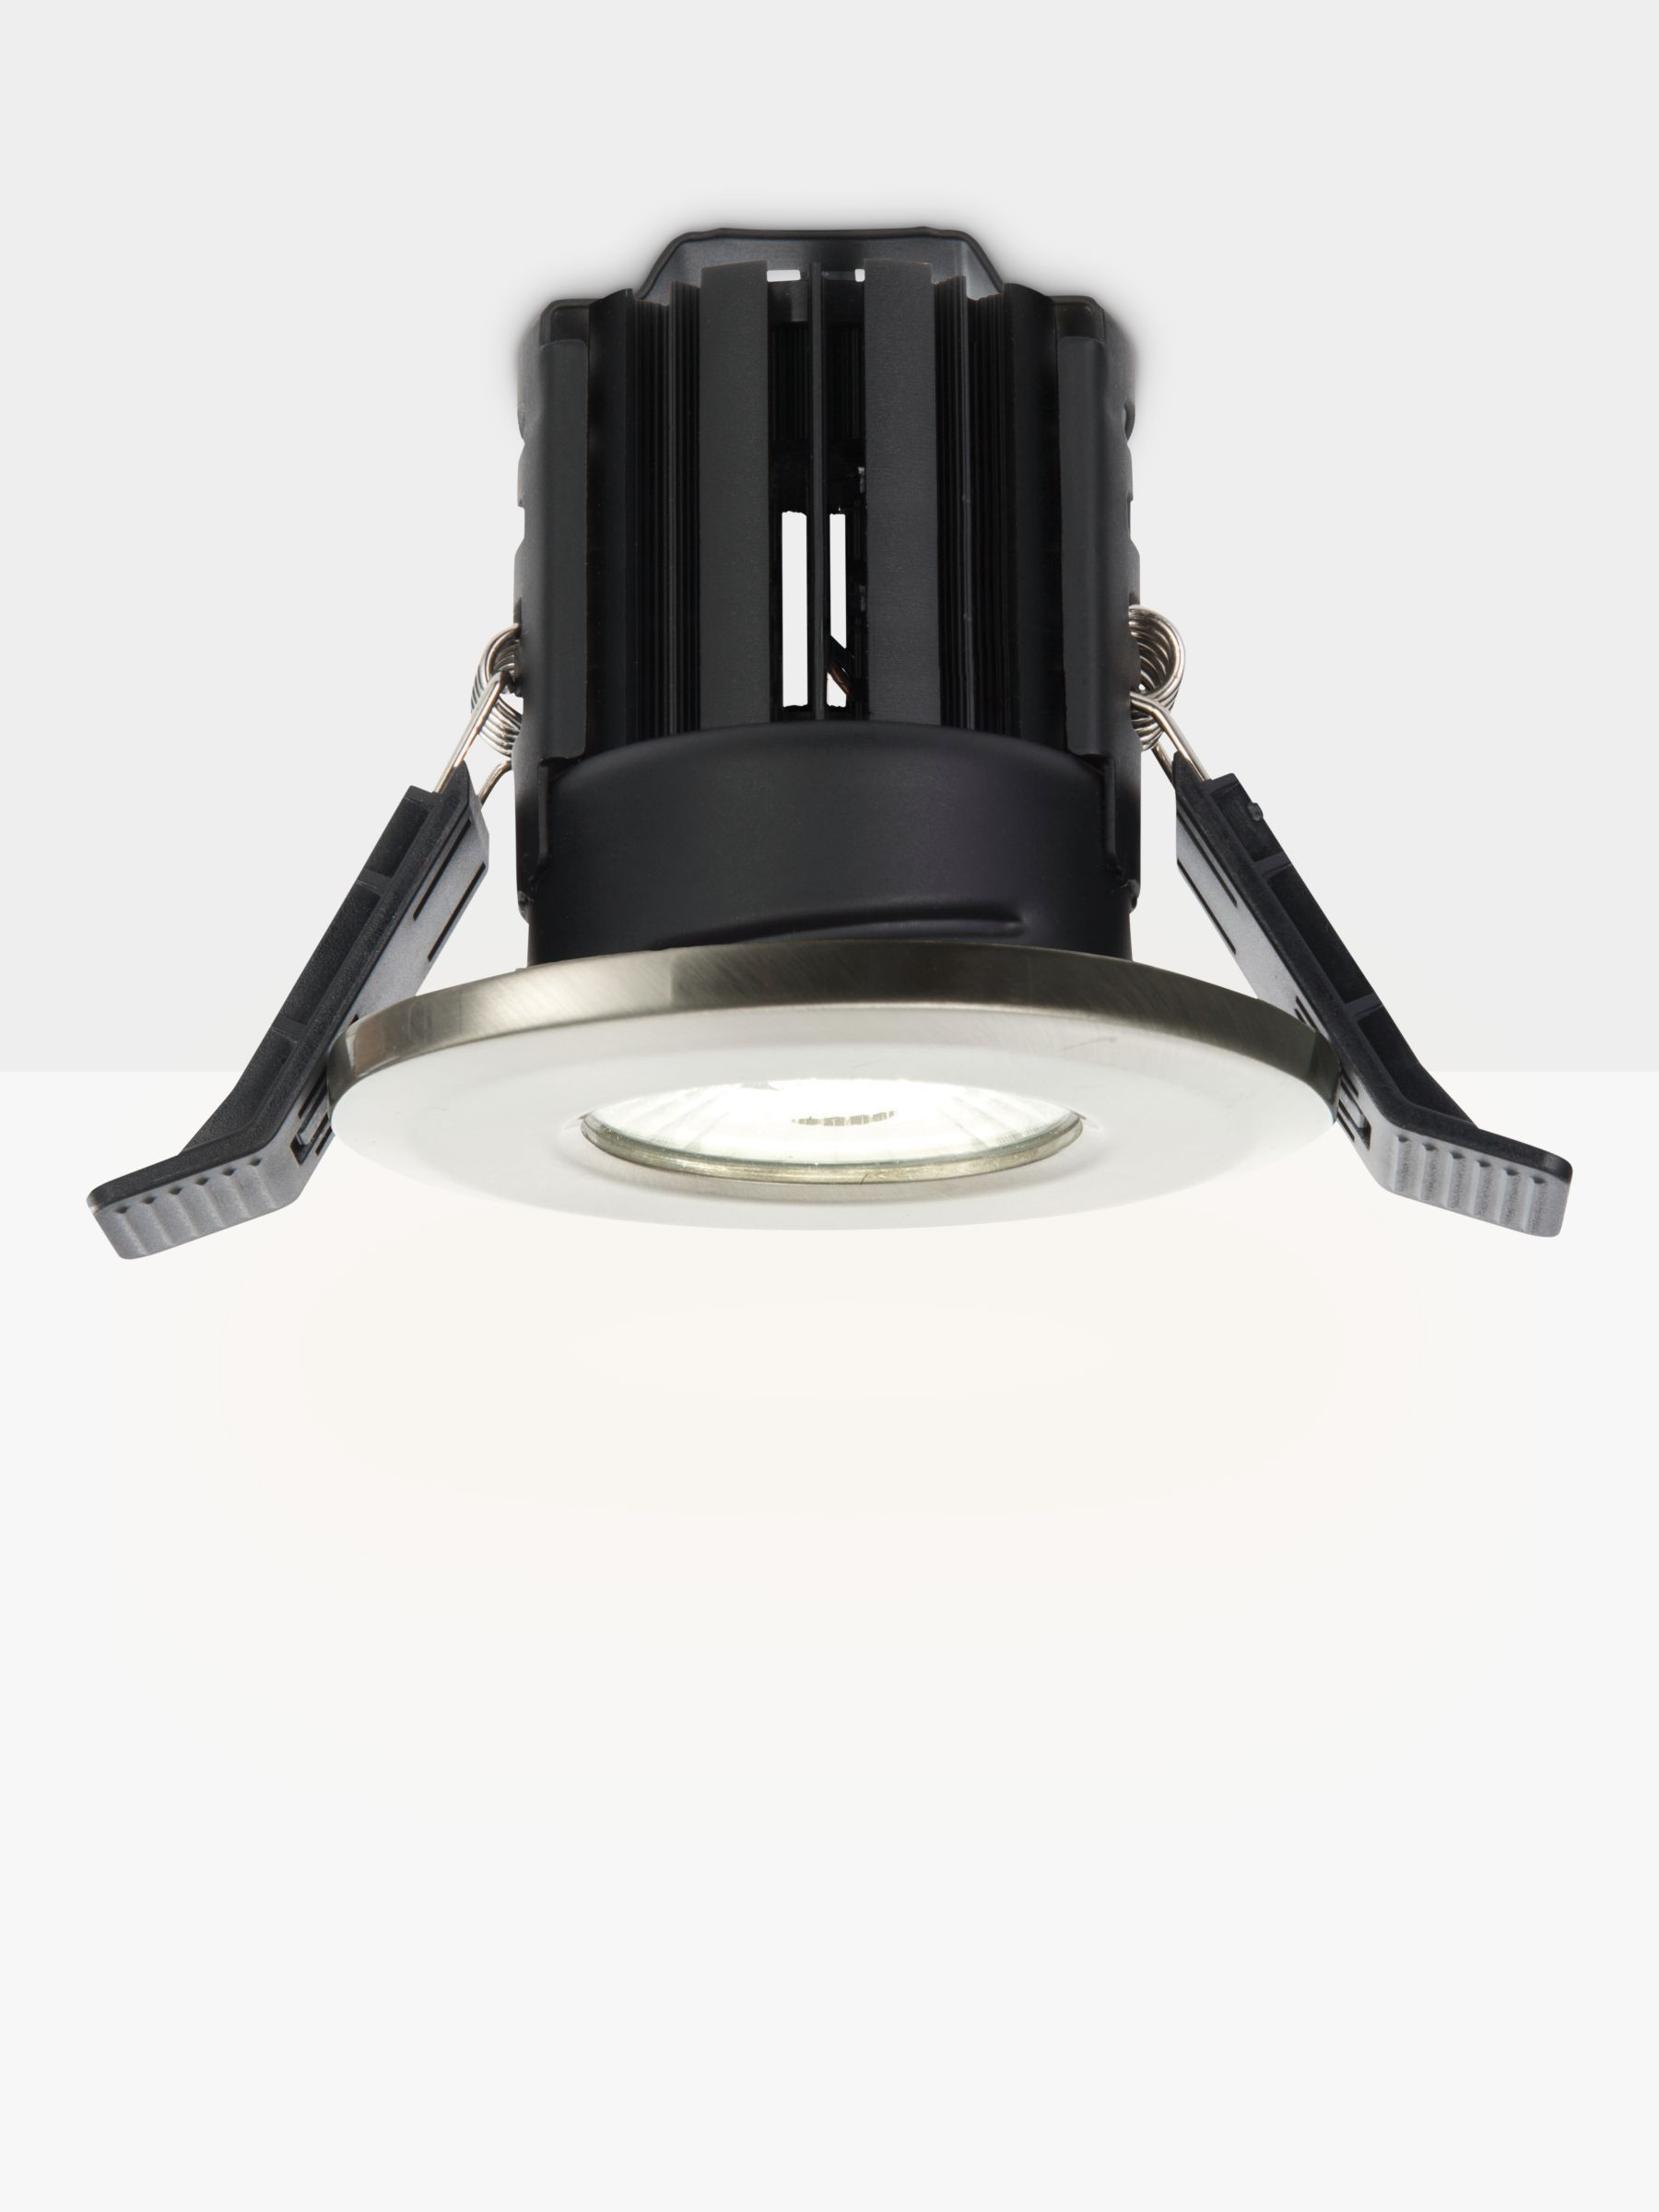 Saxby Saxby Recessed Integrated LED Spotlight